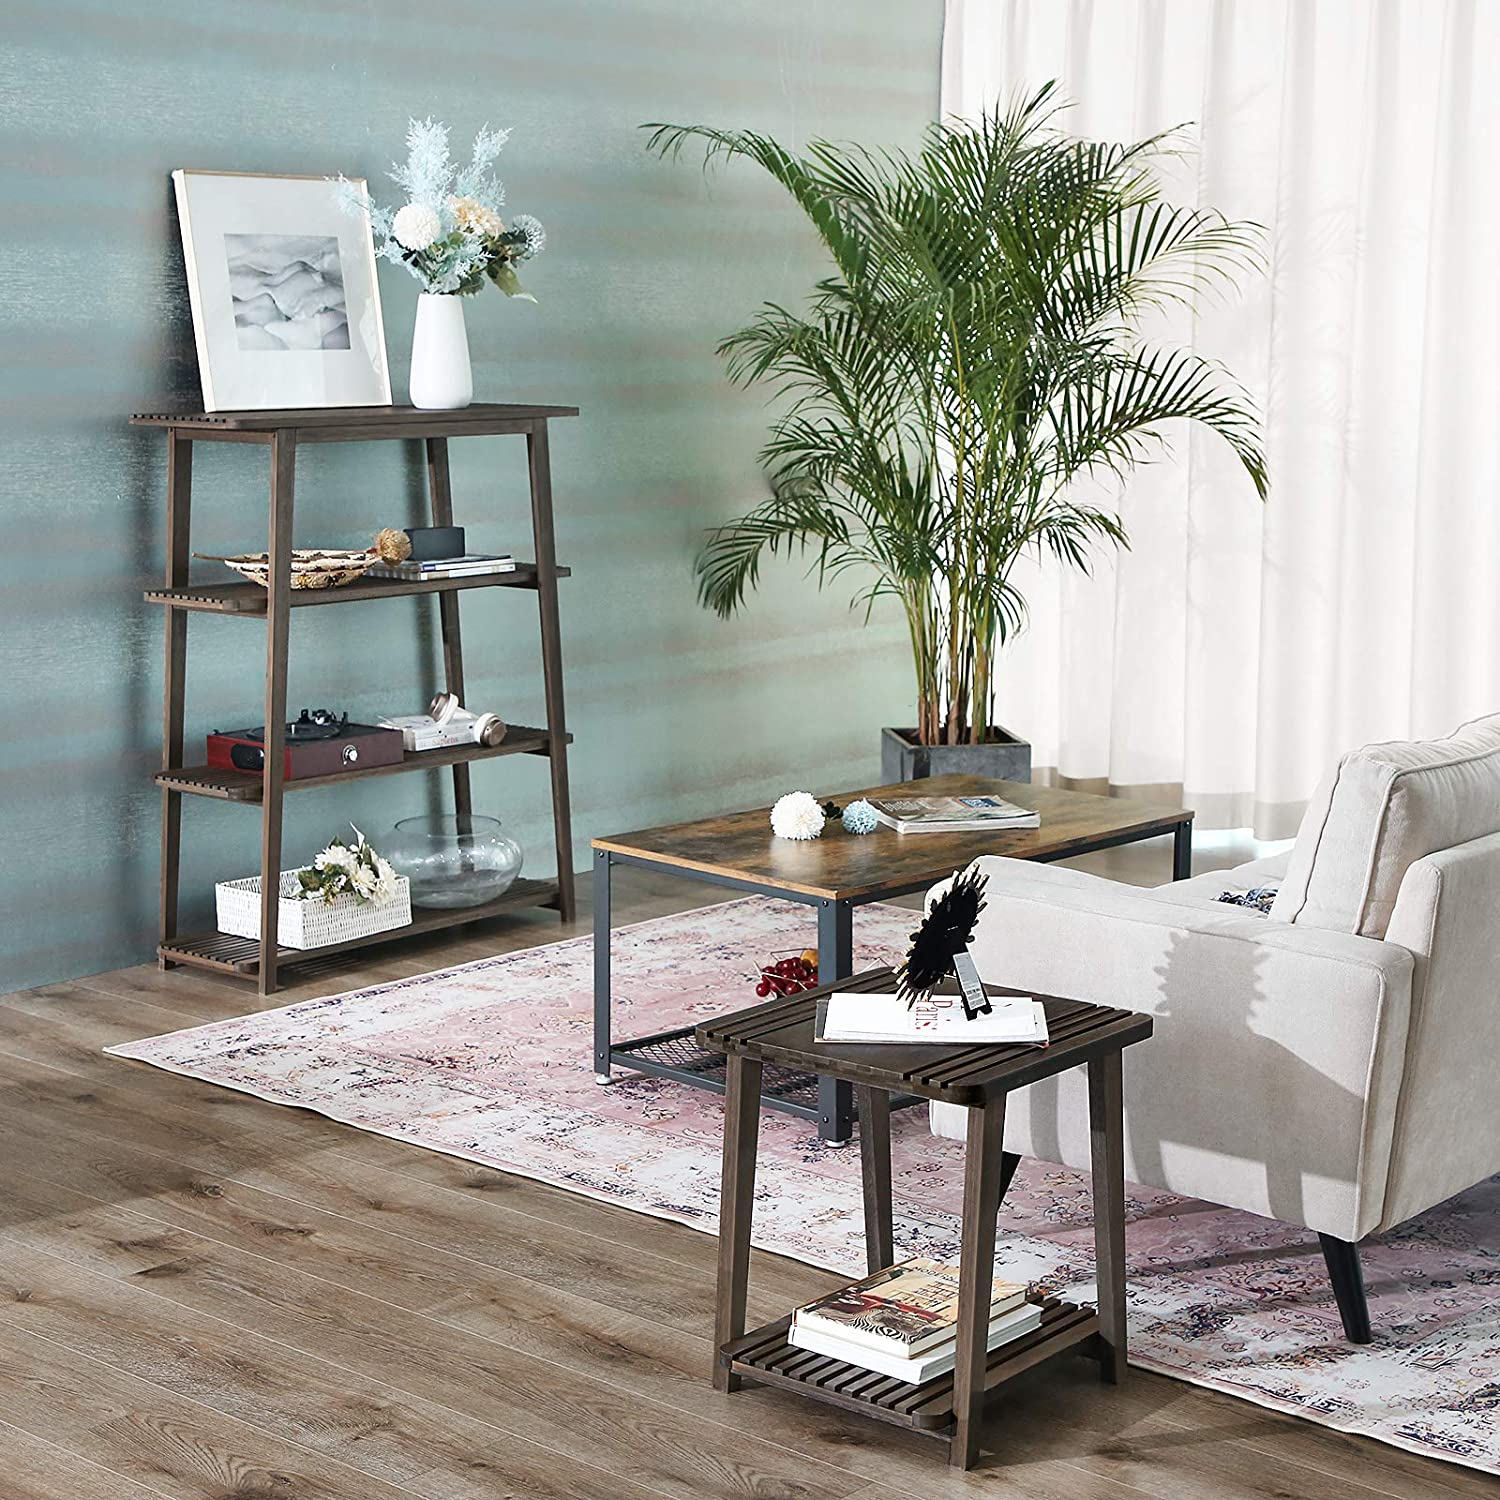 Shelving Unit for Living Room Study Balcony Stable Plant Stand 39.4 x 14.4 x 47.2 Inches Walnut Color ULUS100WN 4-Tier Bookcase with Cutout Design VASAGLE Bamboo Storage Rack Tower Design